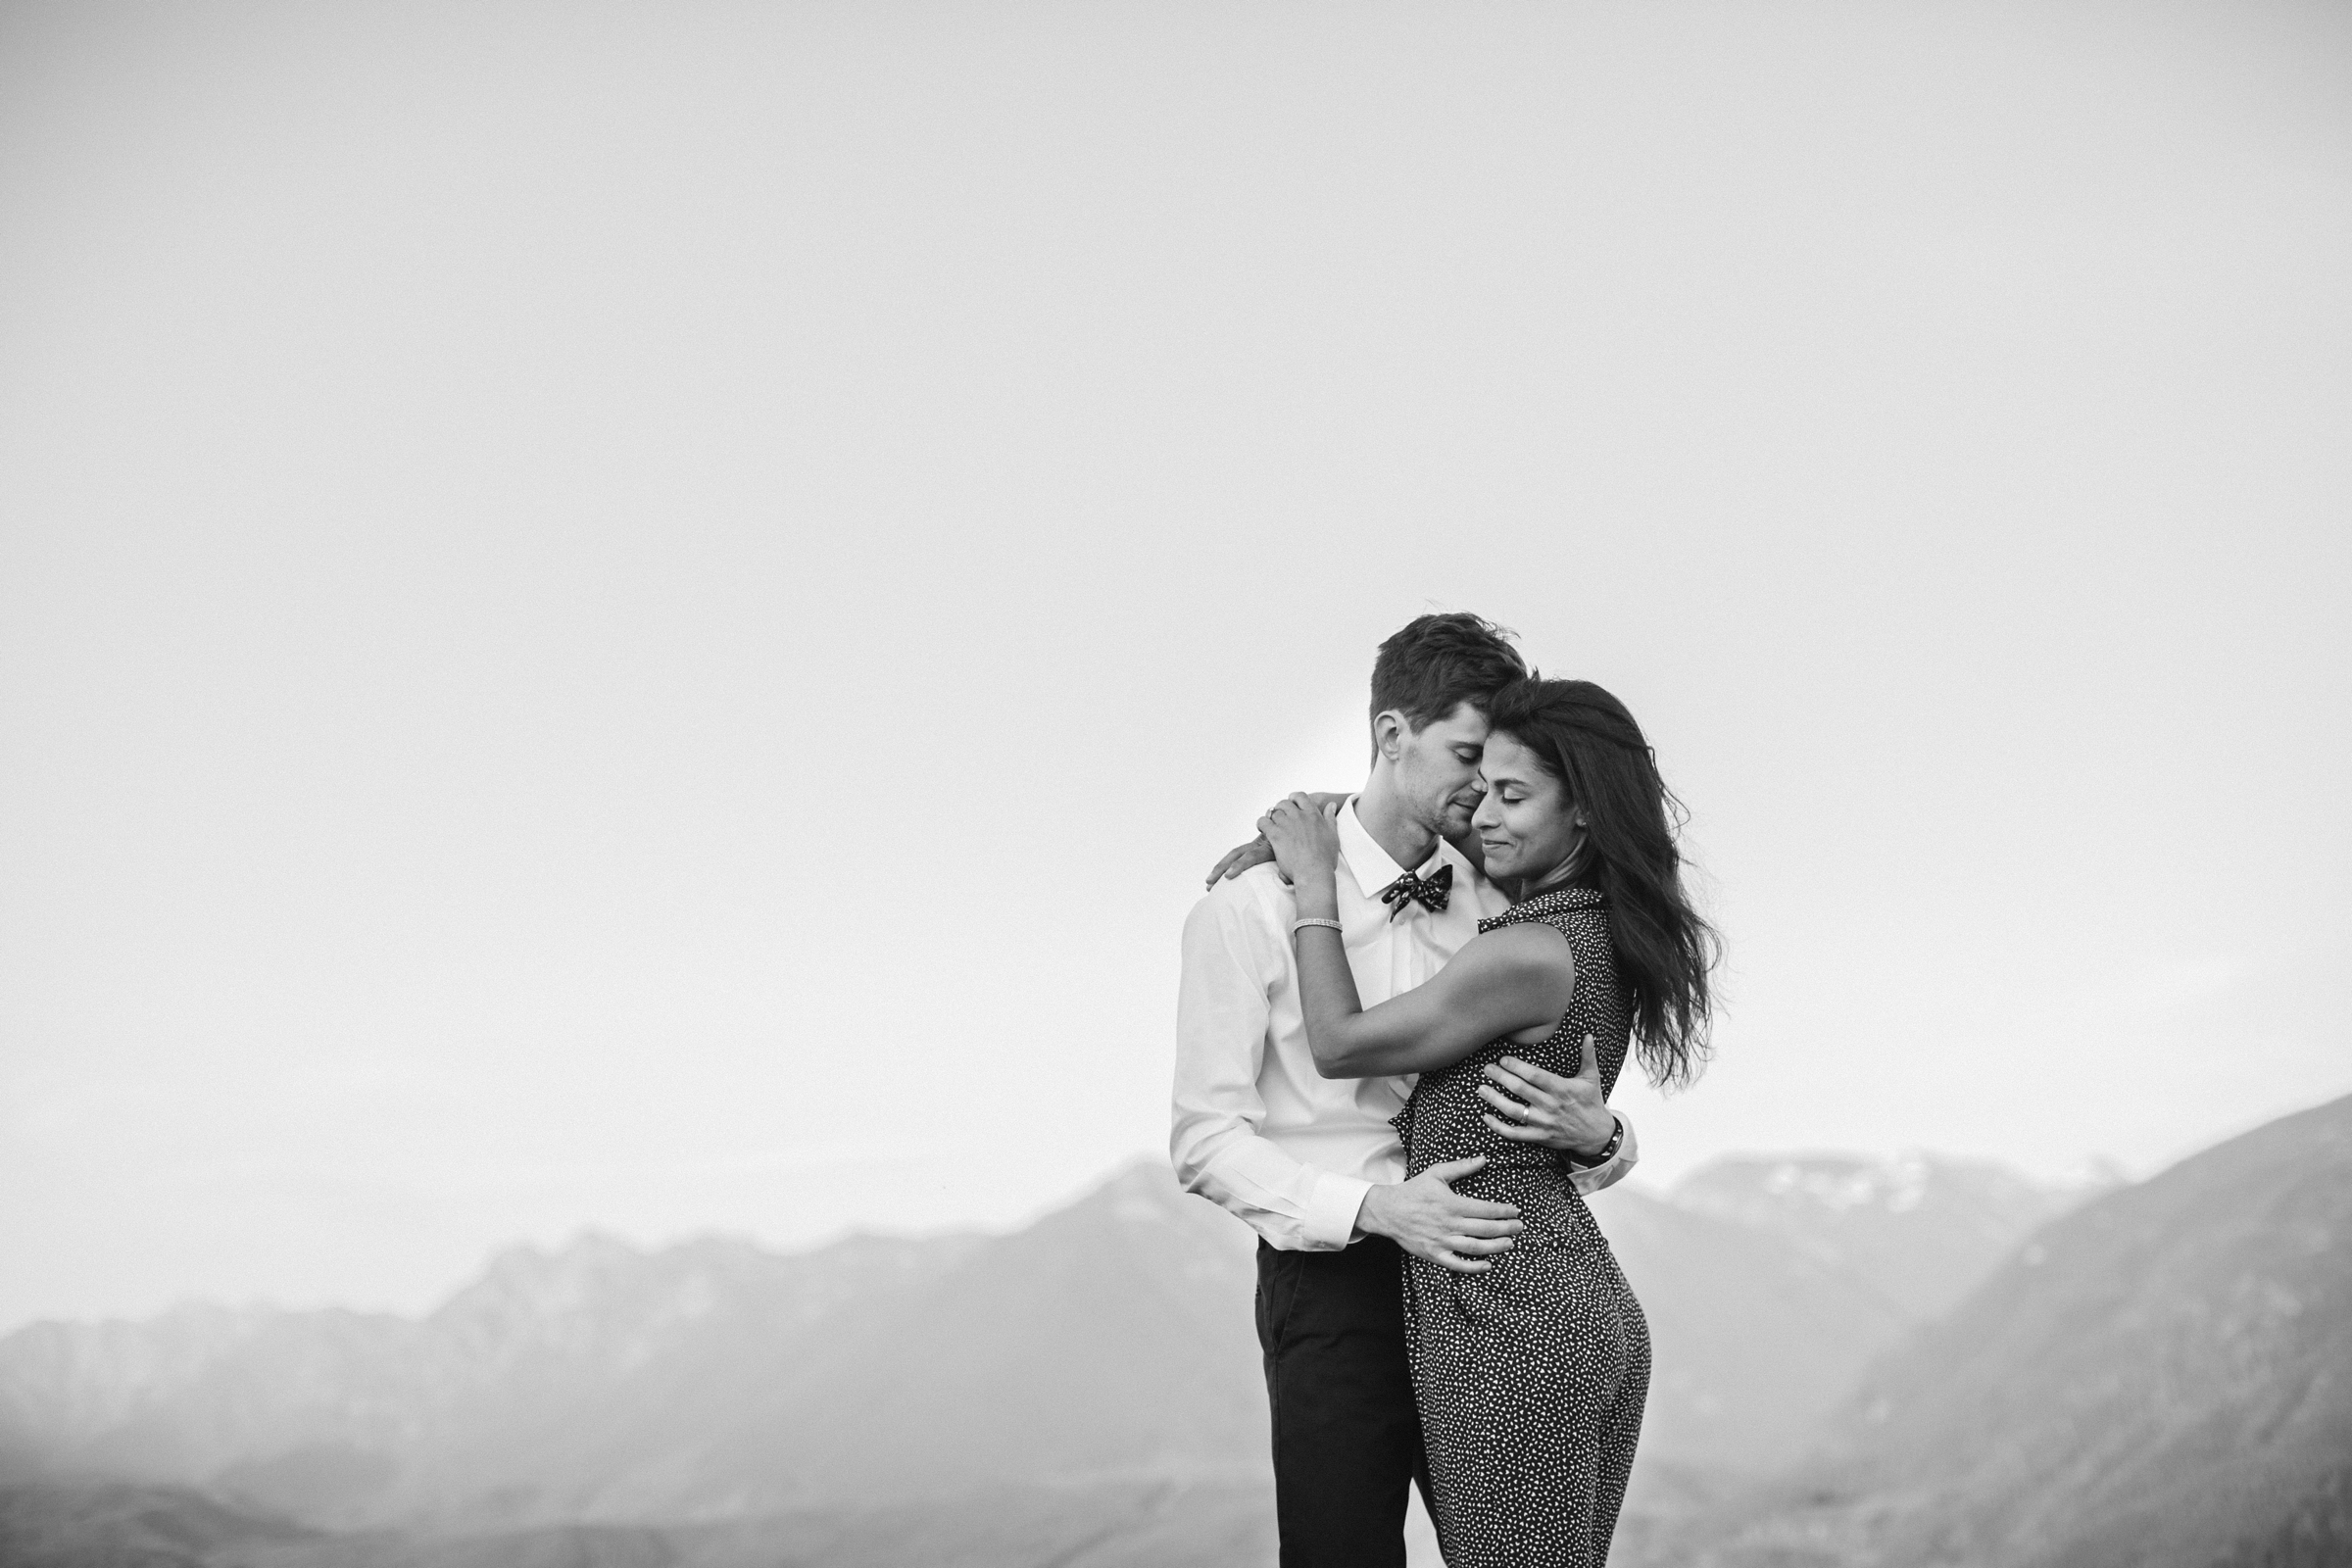 adventure-mountain-top-elopement-photographer-pnw-seattle-washington-wedding-engagement-hike-photography-catie-bergman_0019.jpg